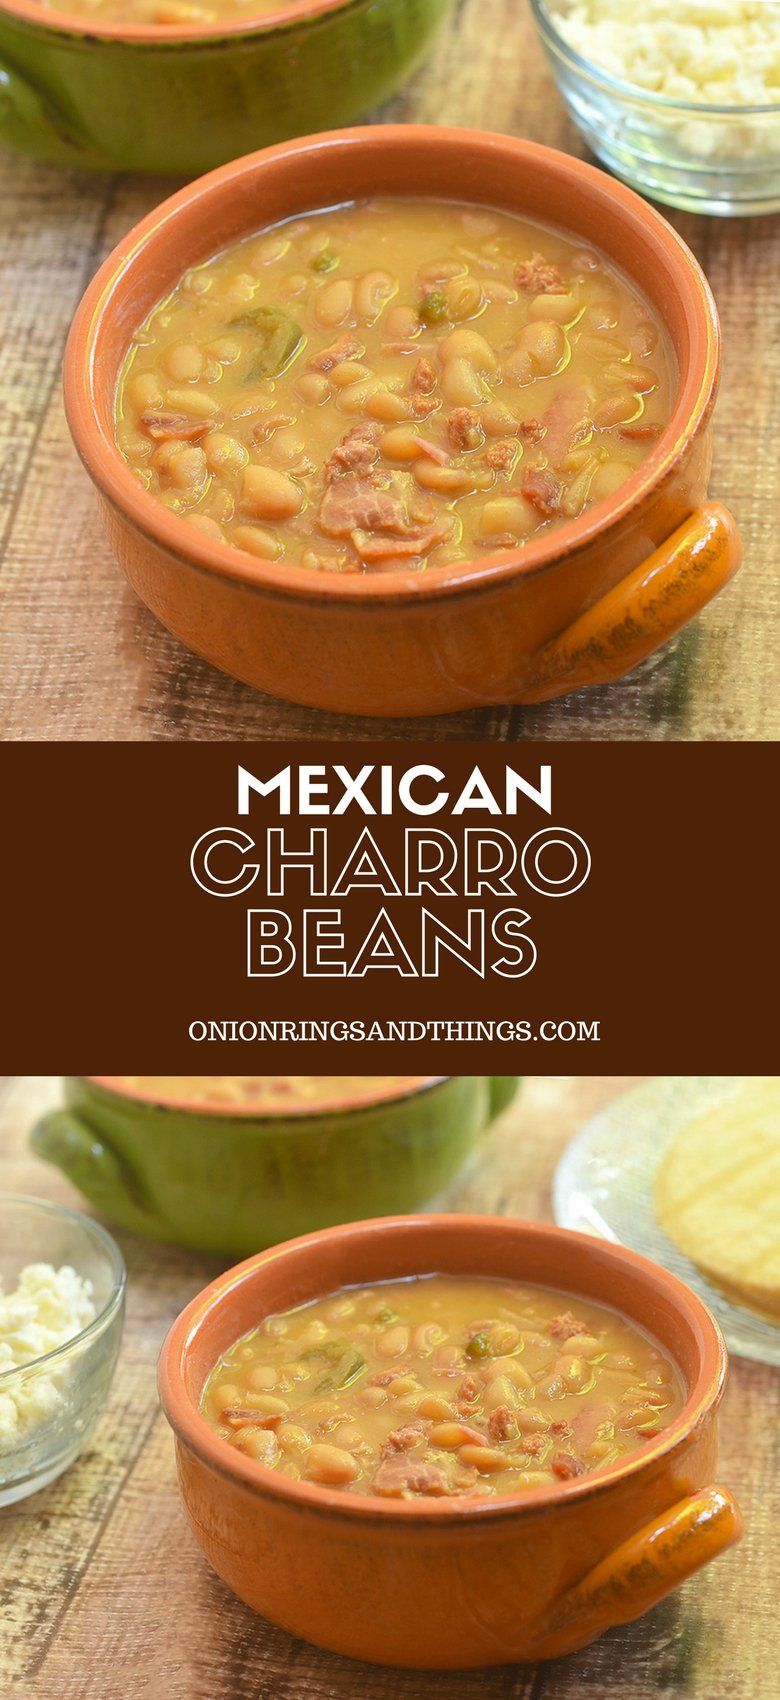 These Charro Beans are cooked with bacon, chorizo, tomatoes and chili peppers for a delicious accompaniment to your favorite Mexican entrees. They're hearty enough to be enjoyed on their own with warm tortillas and the recipe can be easily doubled to feed a crowd!